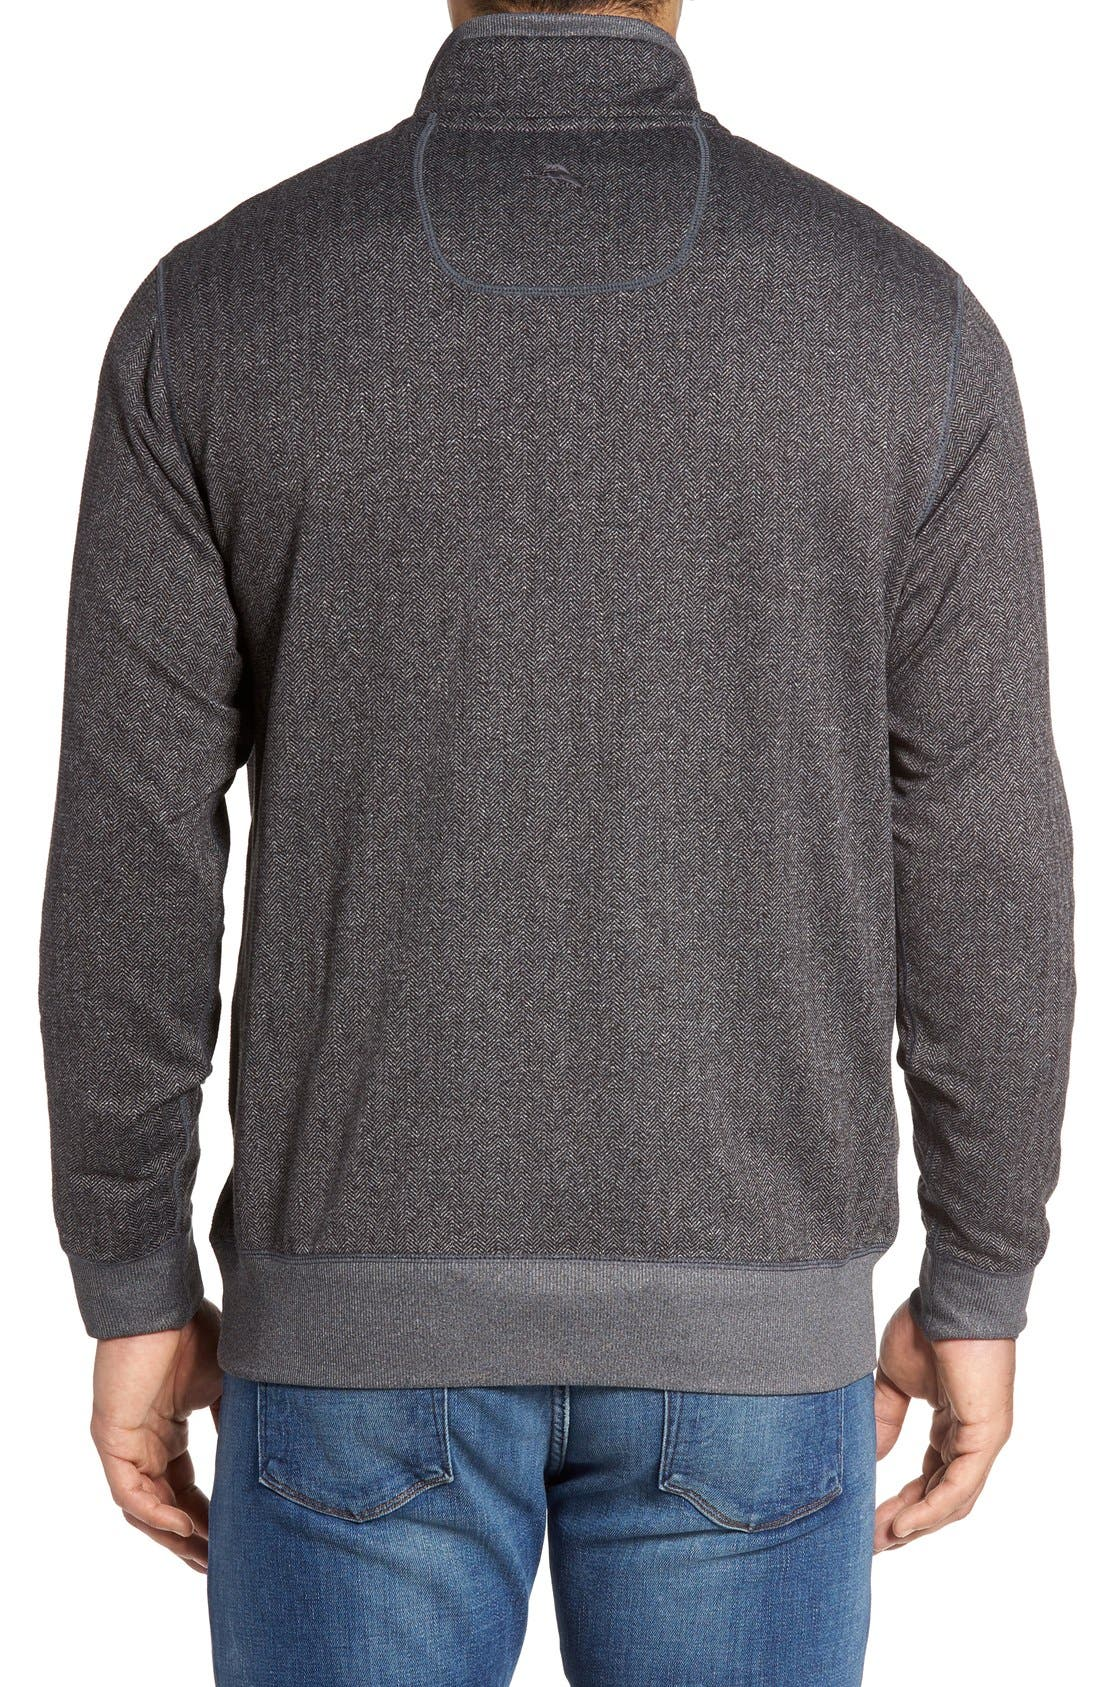 Pro Formance Quarter Zip Sweater,                             Alternate thumbnail 7, color,                             050